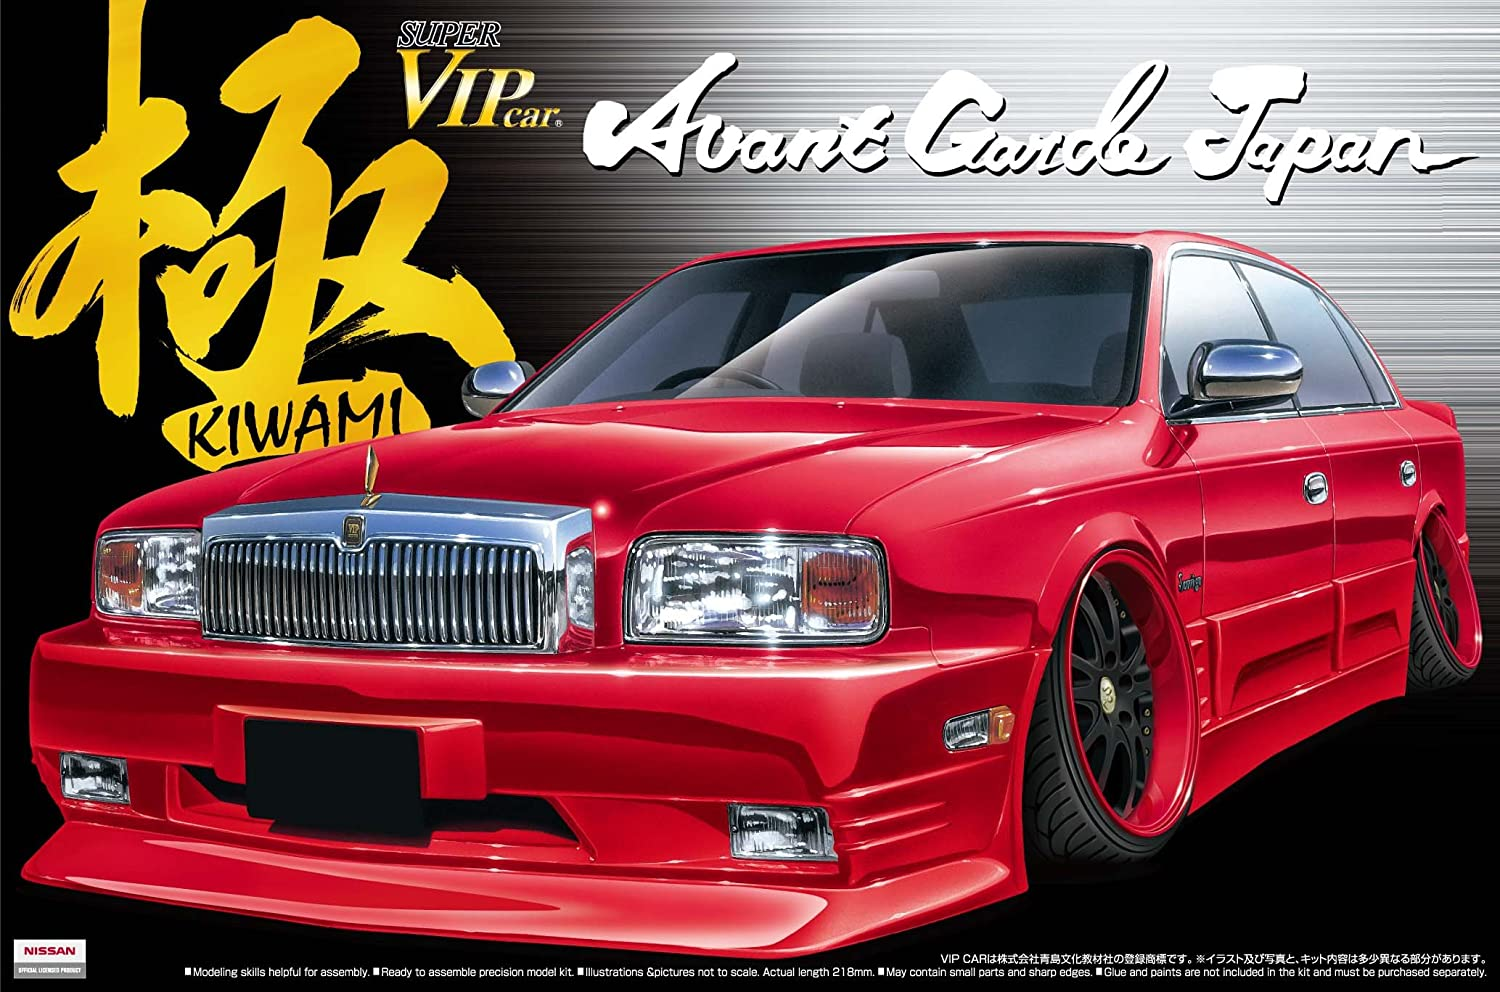 1 24 Super Series No.96 VIPCAR very avantgarde G50 President (japan import)